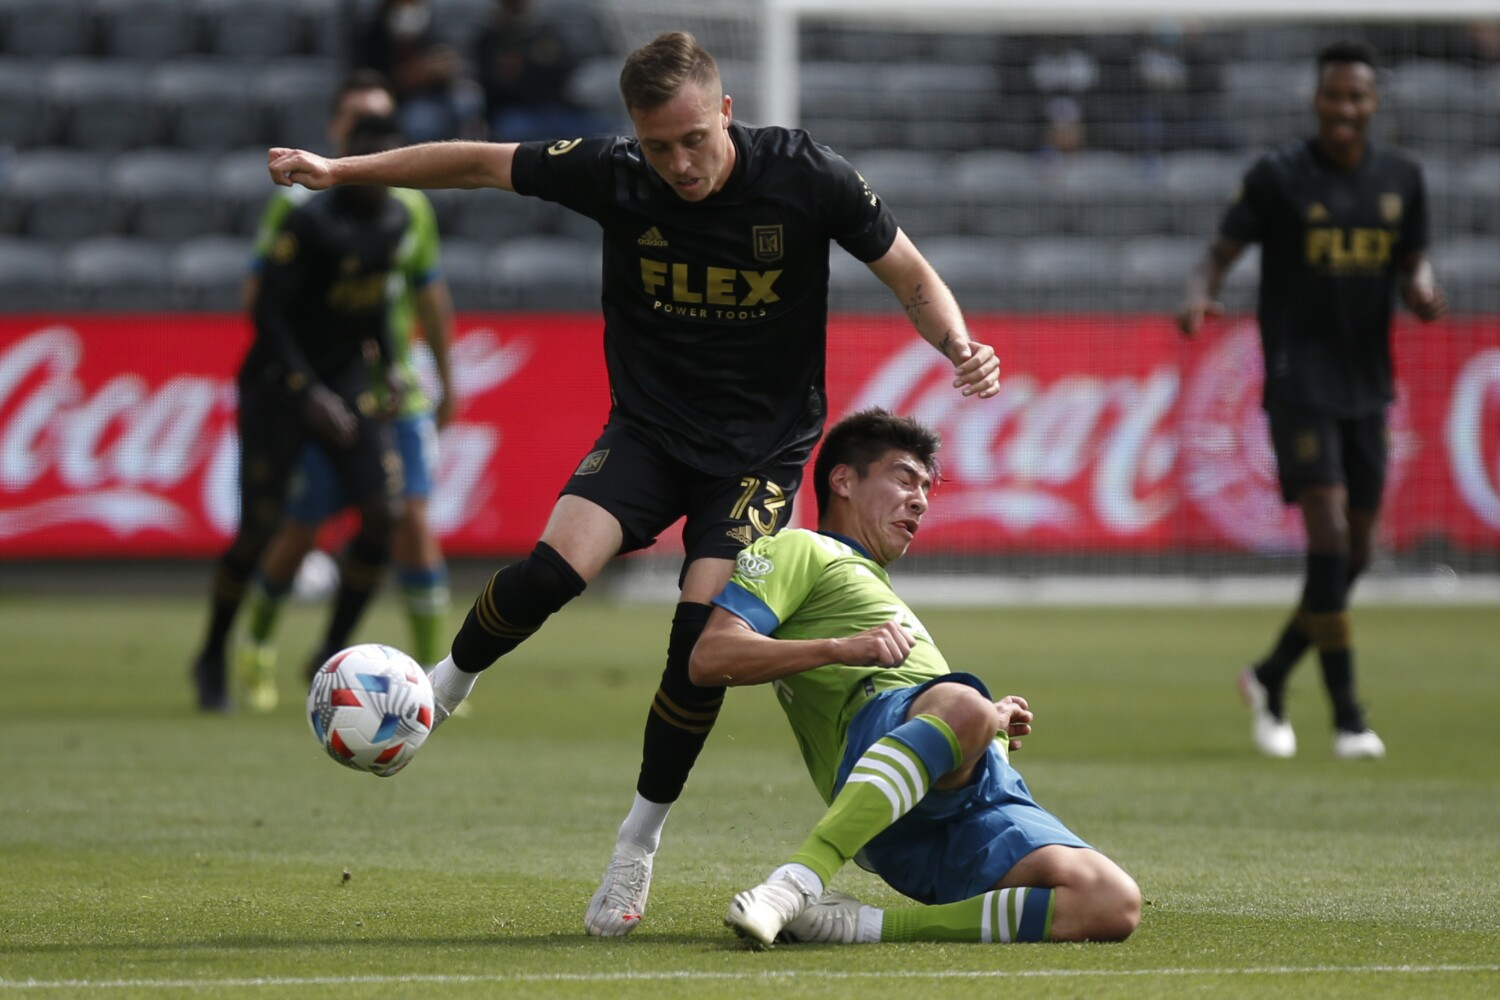 LAFC finalizes deal for games to be broadcast on KCOP-TV and Bally Sports SoCal